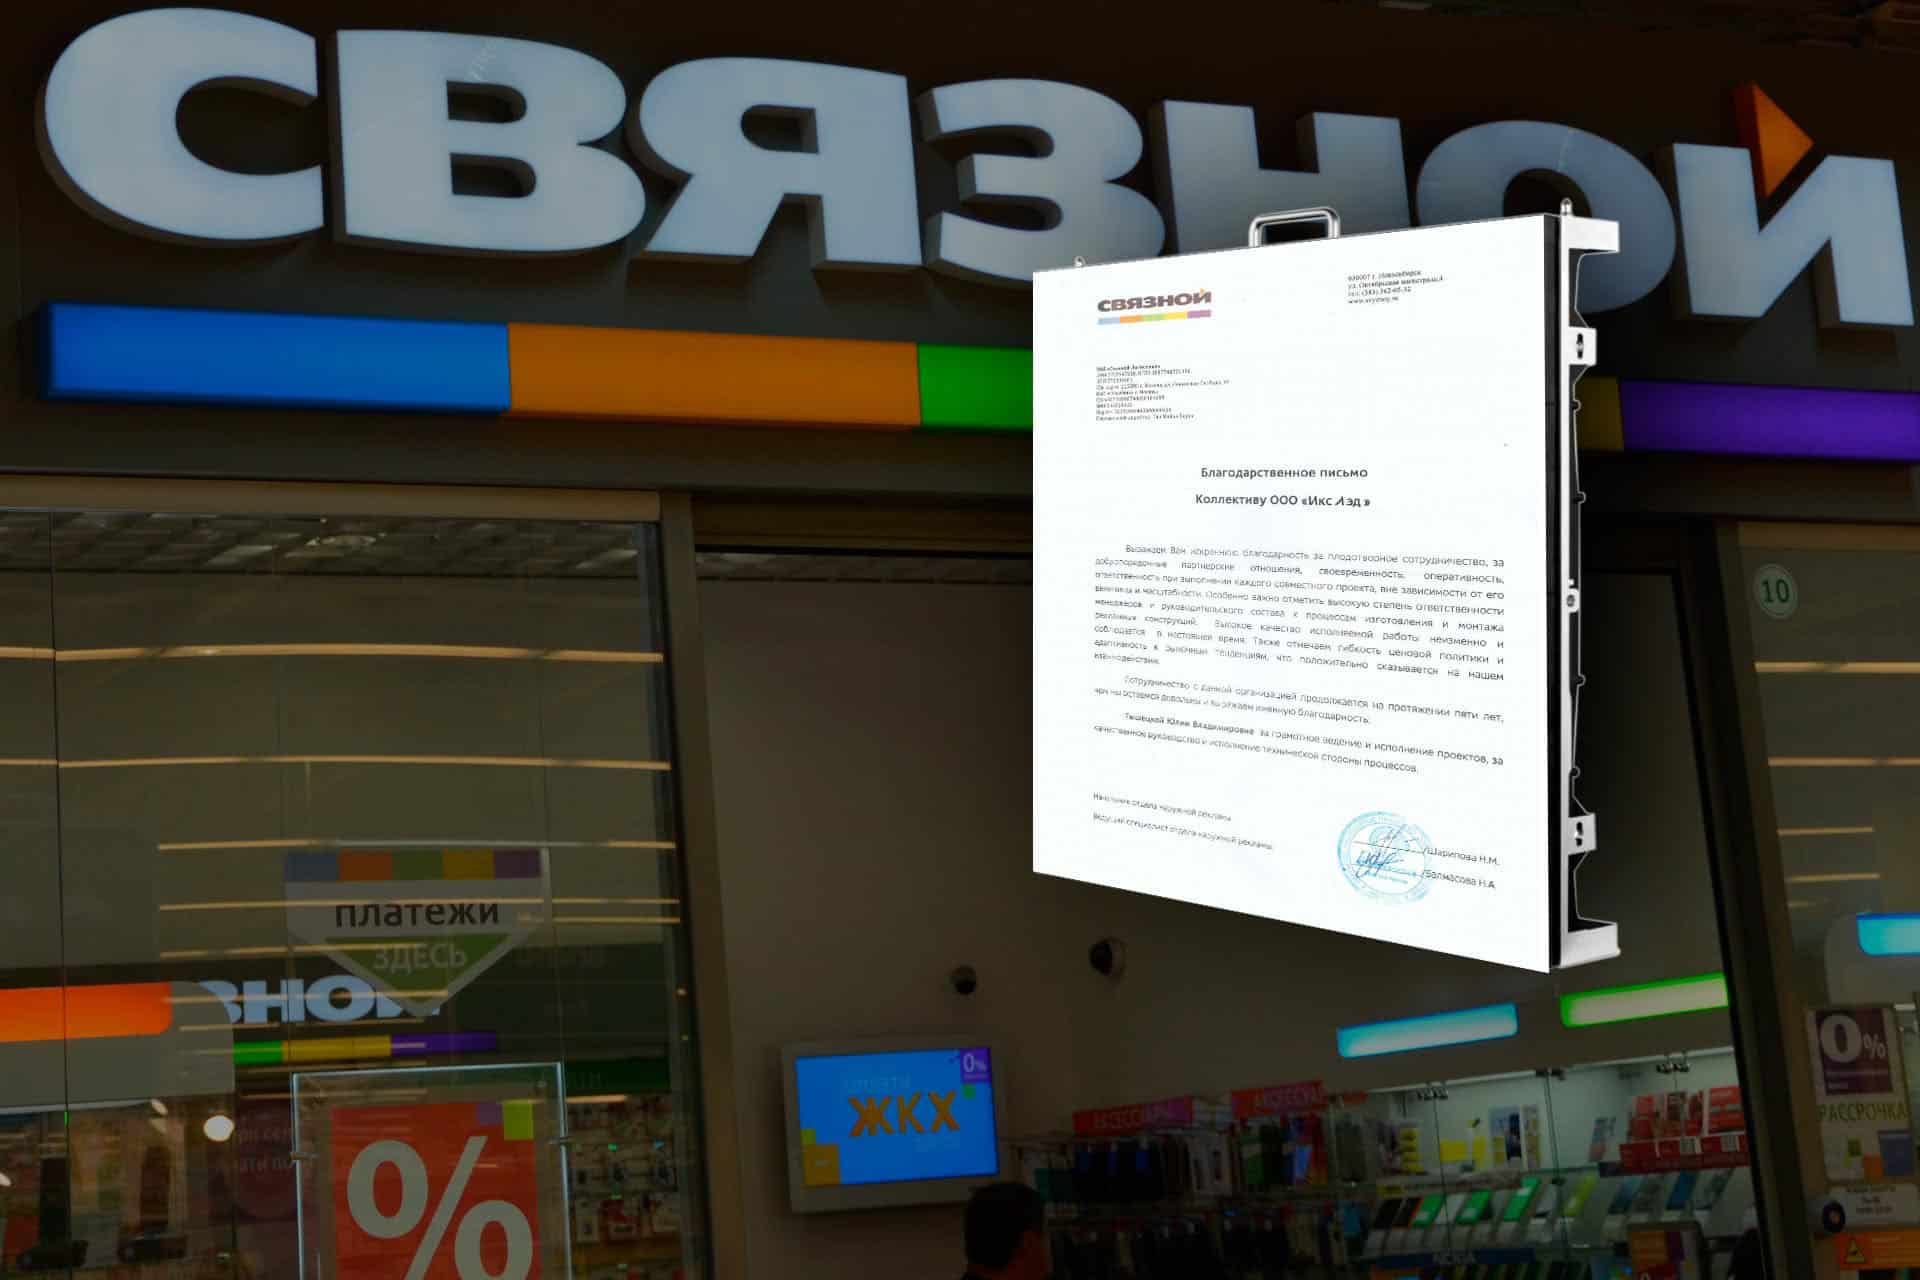 A letter of thanks from Связной.